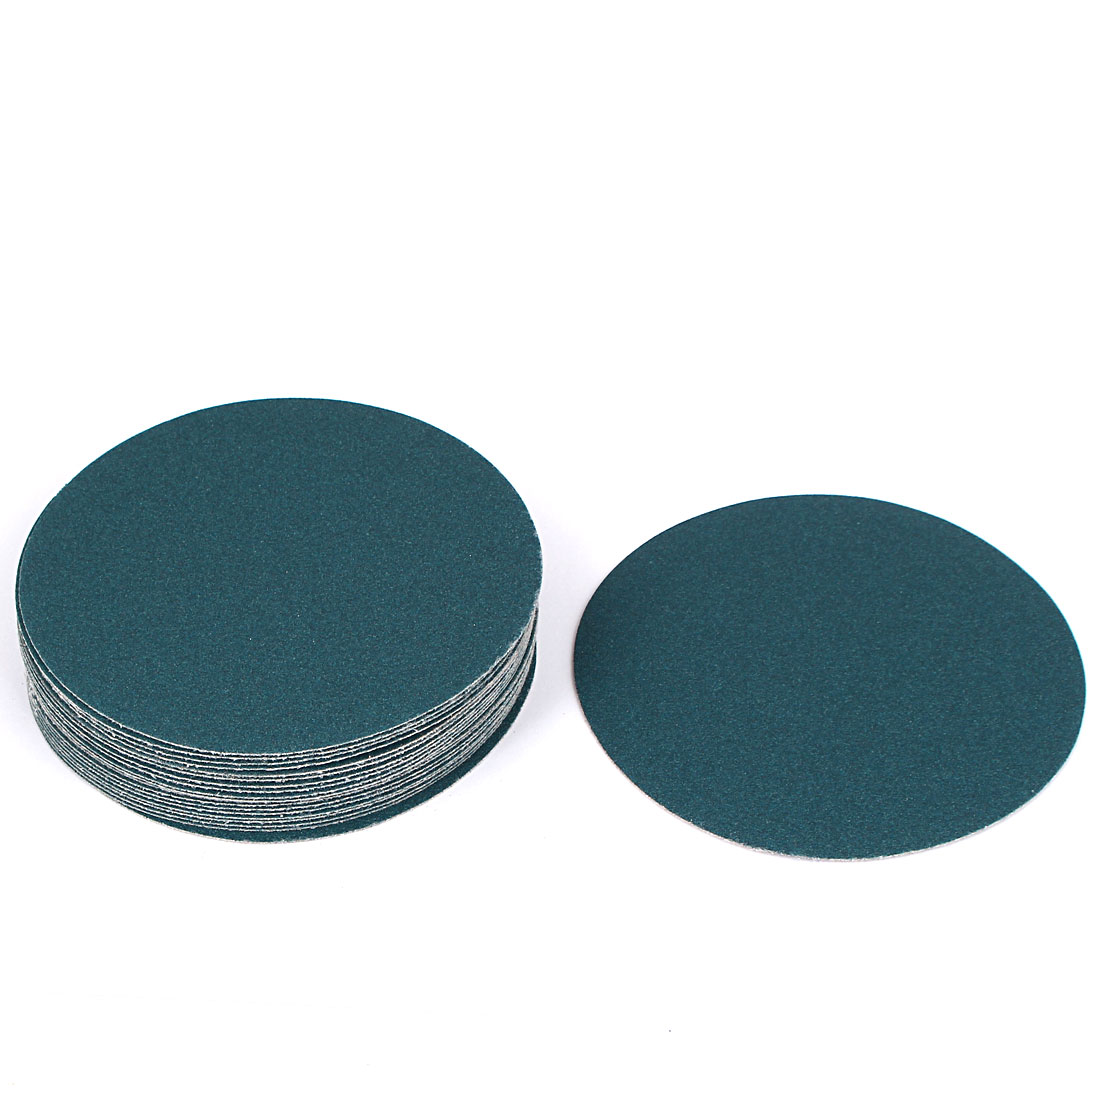 5inch Flocking Sandpaper Auto Car Paint Polishing Sanding Disc 180 Grit 20pcs